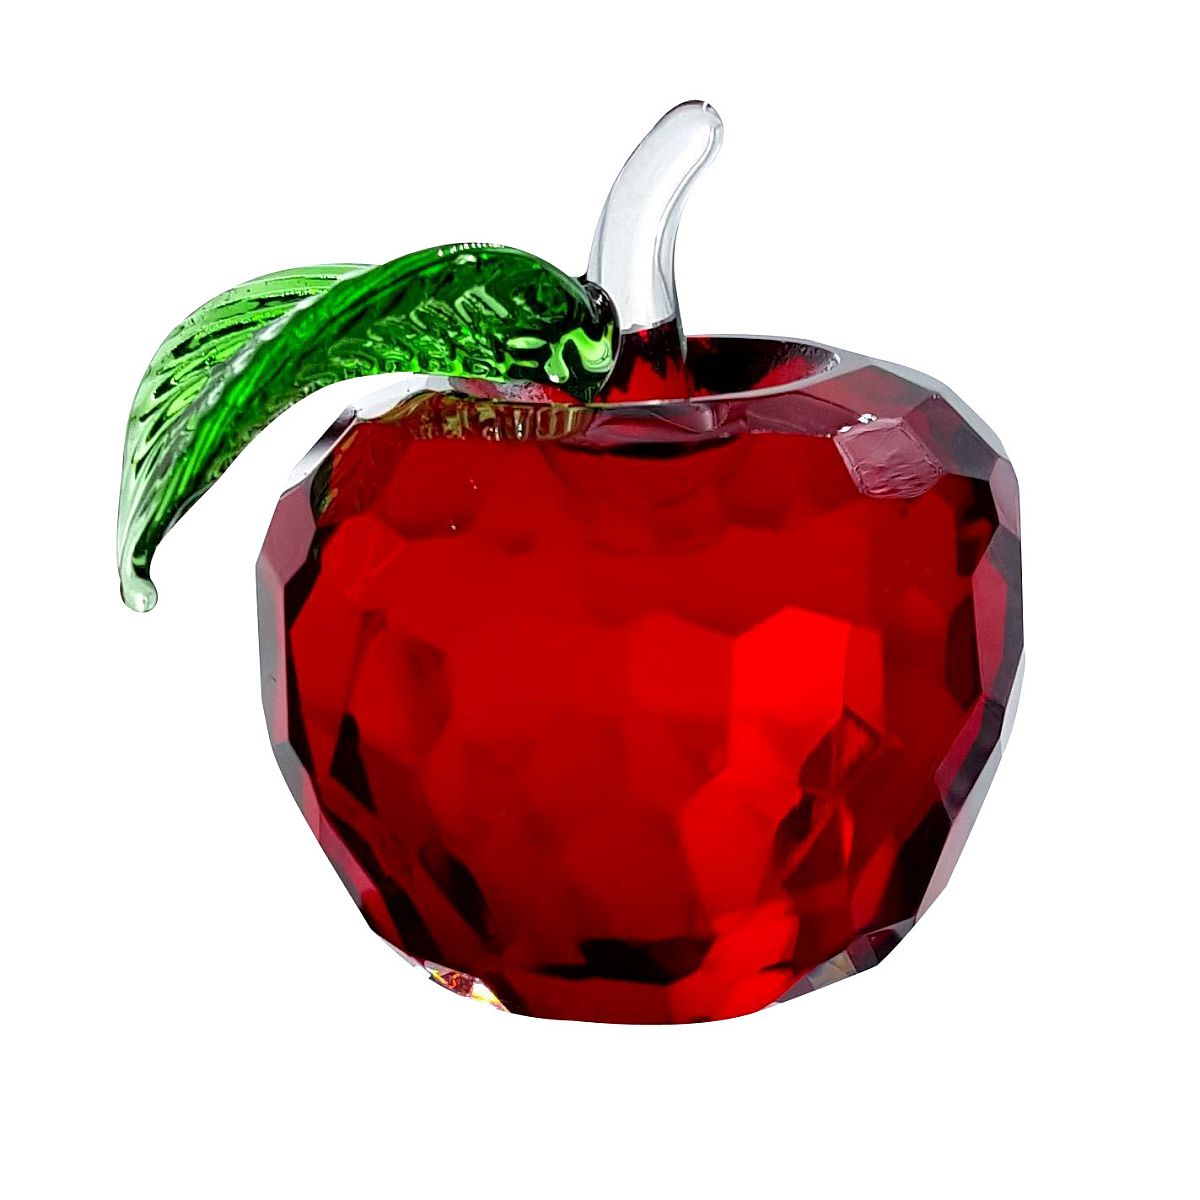 Crystal Medium Red Apple Figurine with Green Leaf